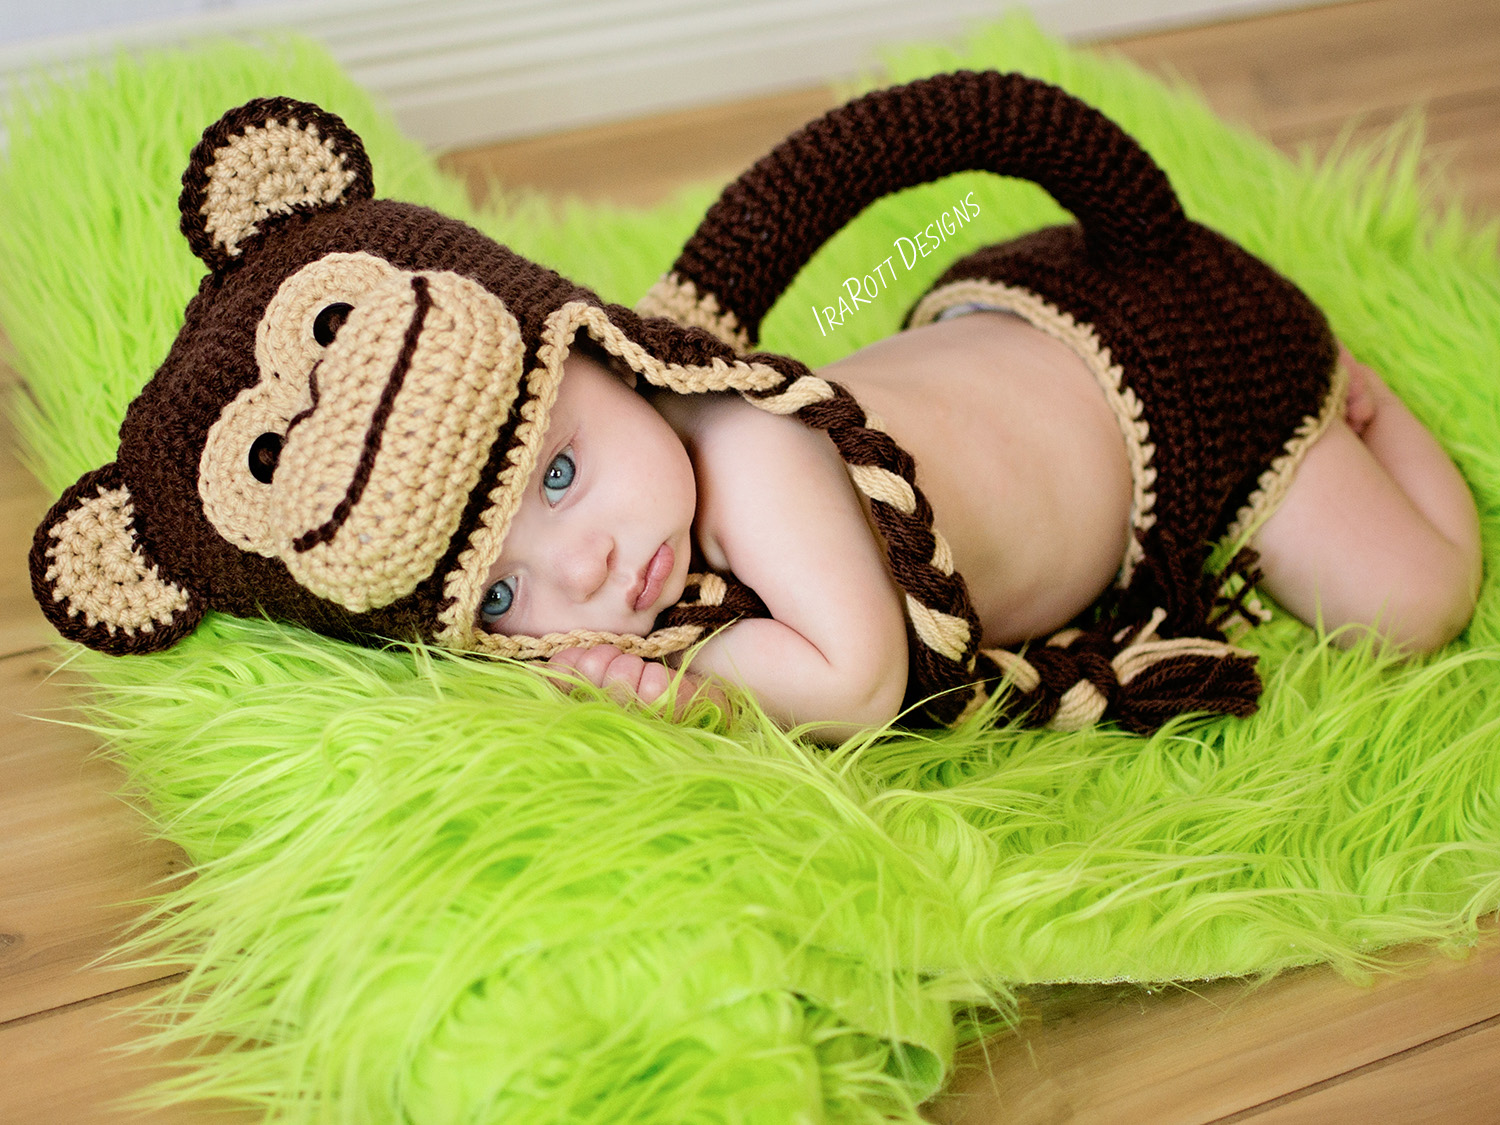 Monkey Crochet Patterns Irarott Inc